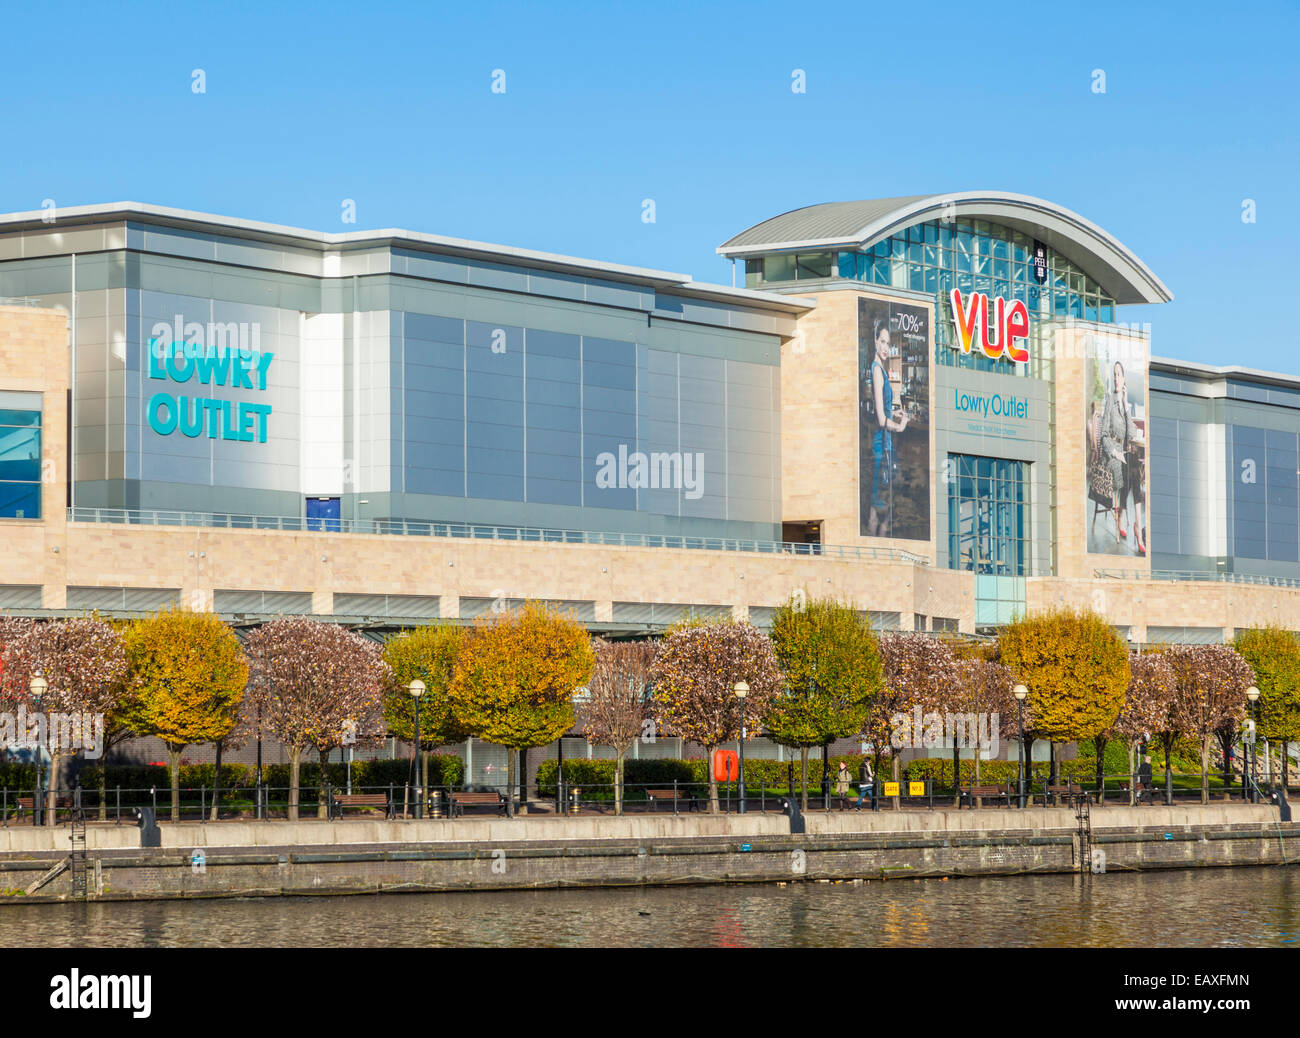 Lowry Outlet Mall Media City UK Salford Quays Salford Manchester England UK GB EU Europe - Stock Image